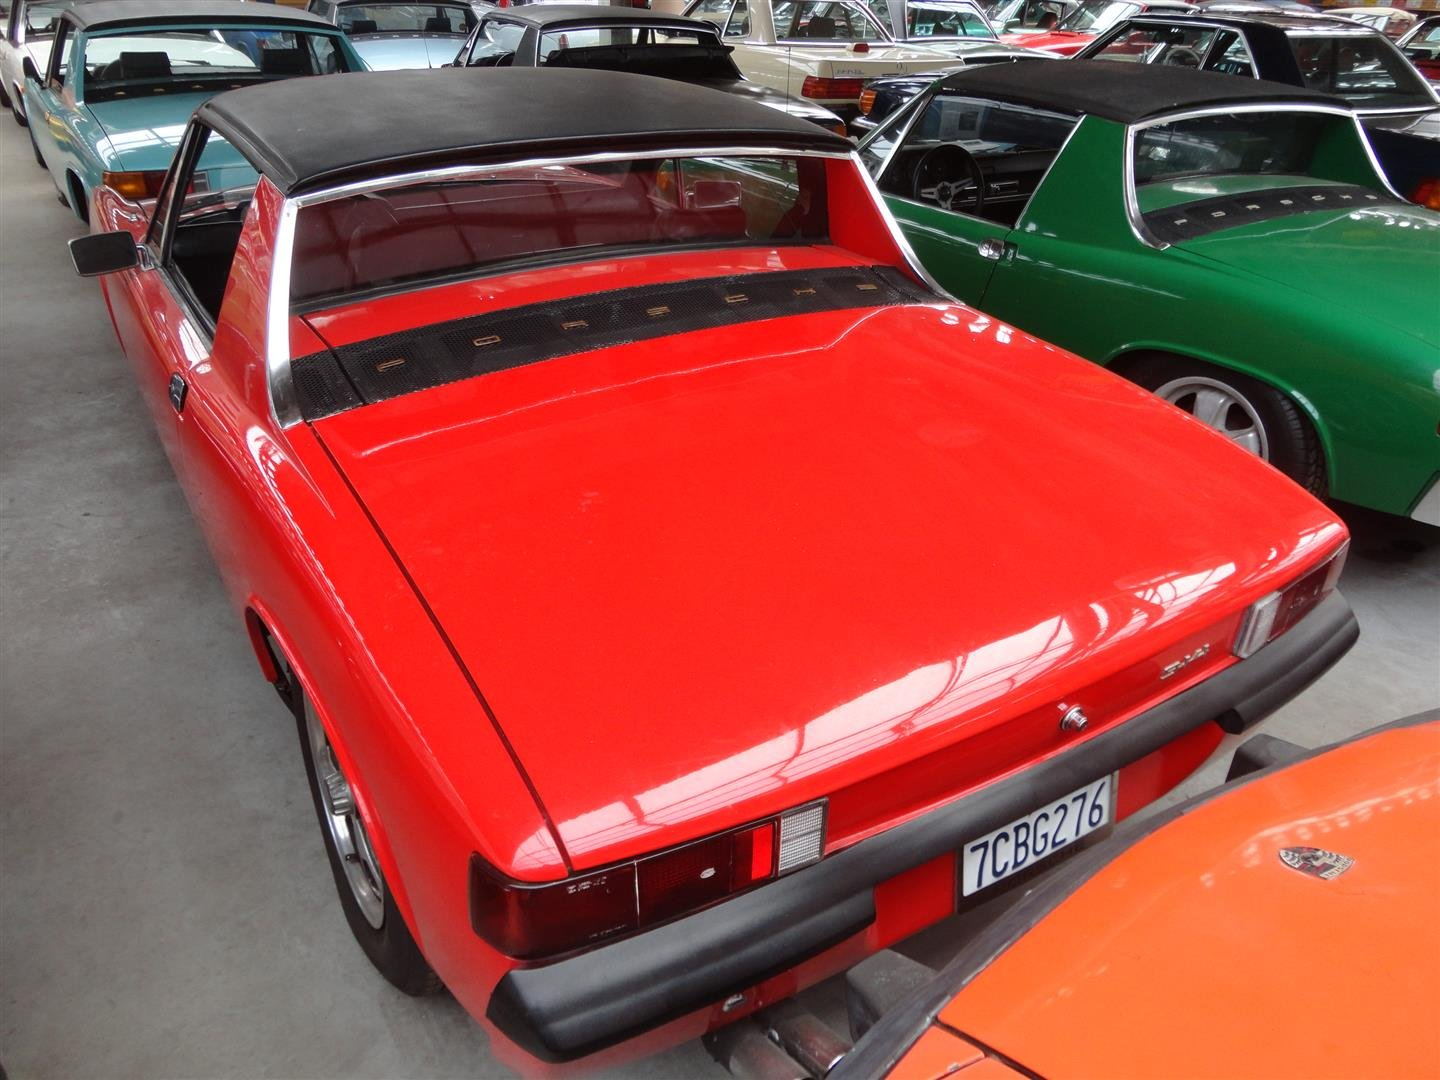 1972 Porsche 914 1.7 ltr. '72 For Sale (picture 6 of 6)